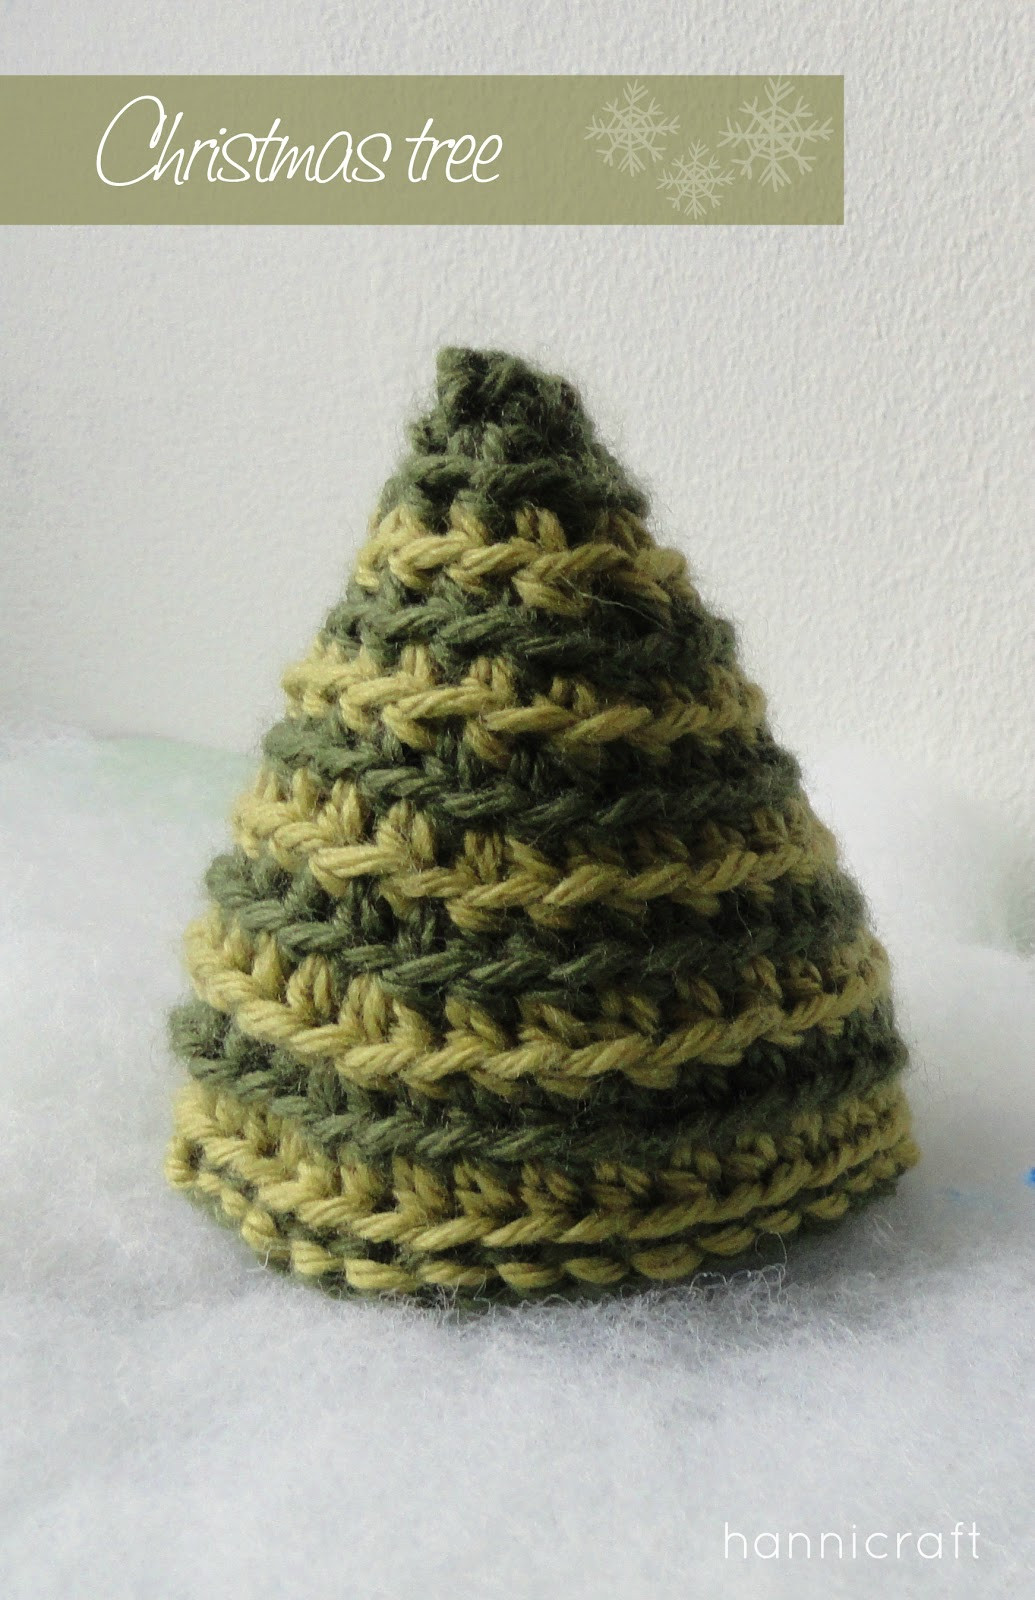 hannicraft Crochet Christmas Tree